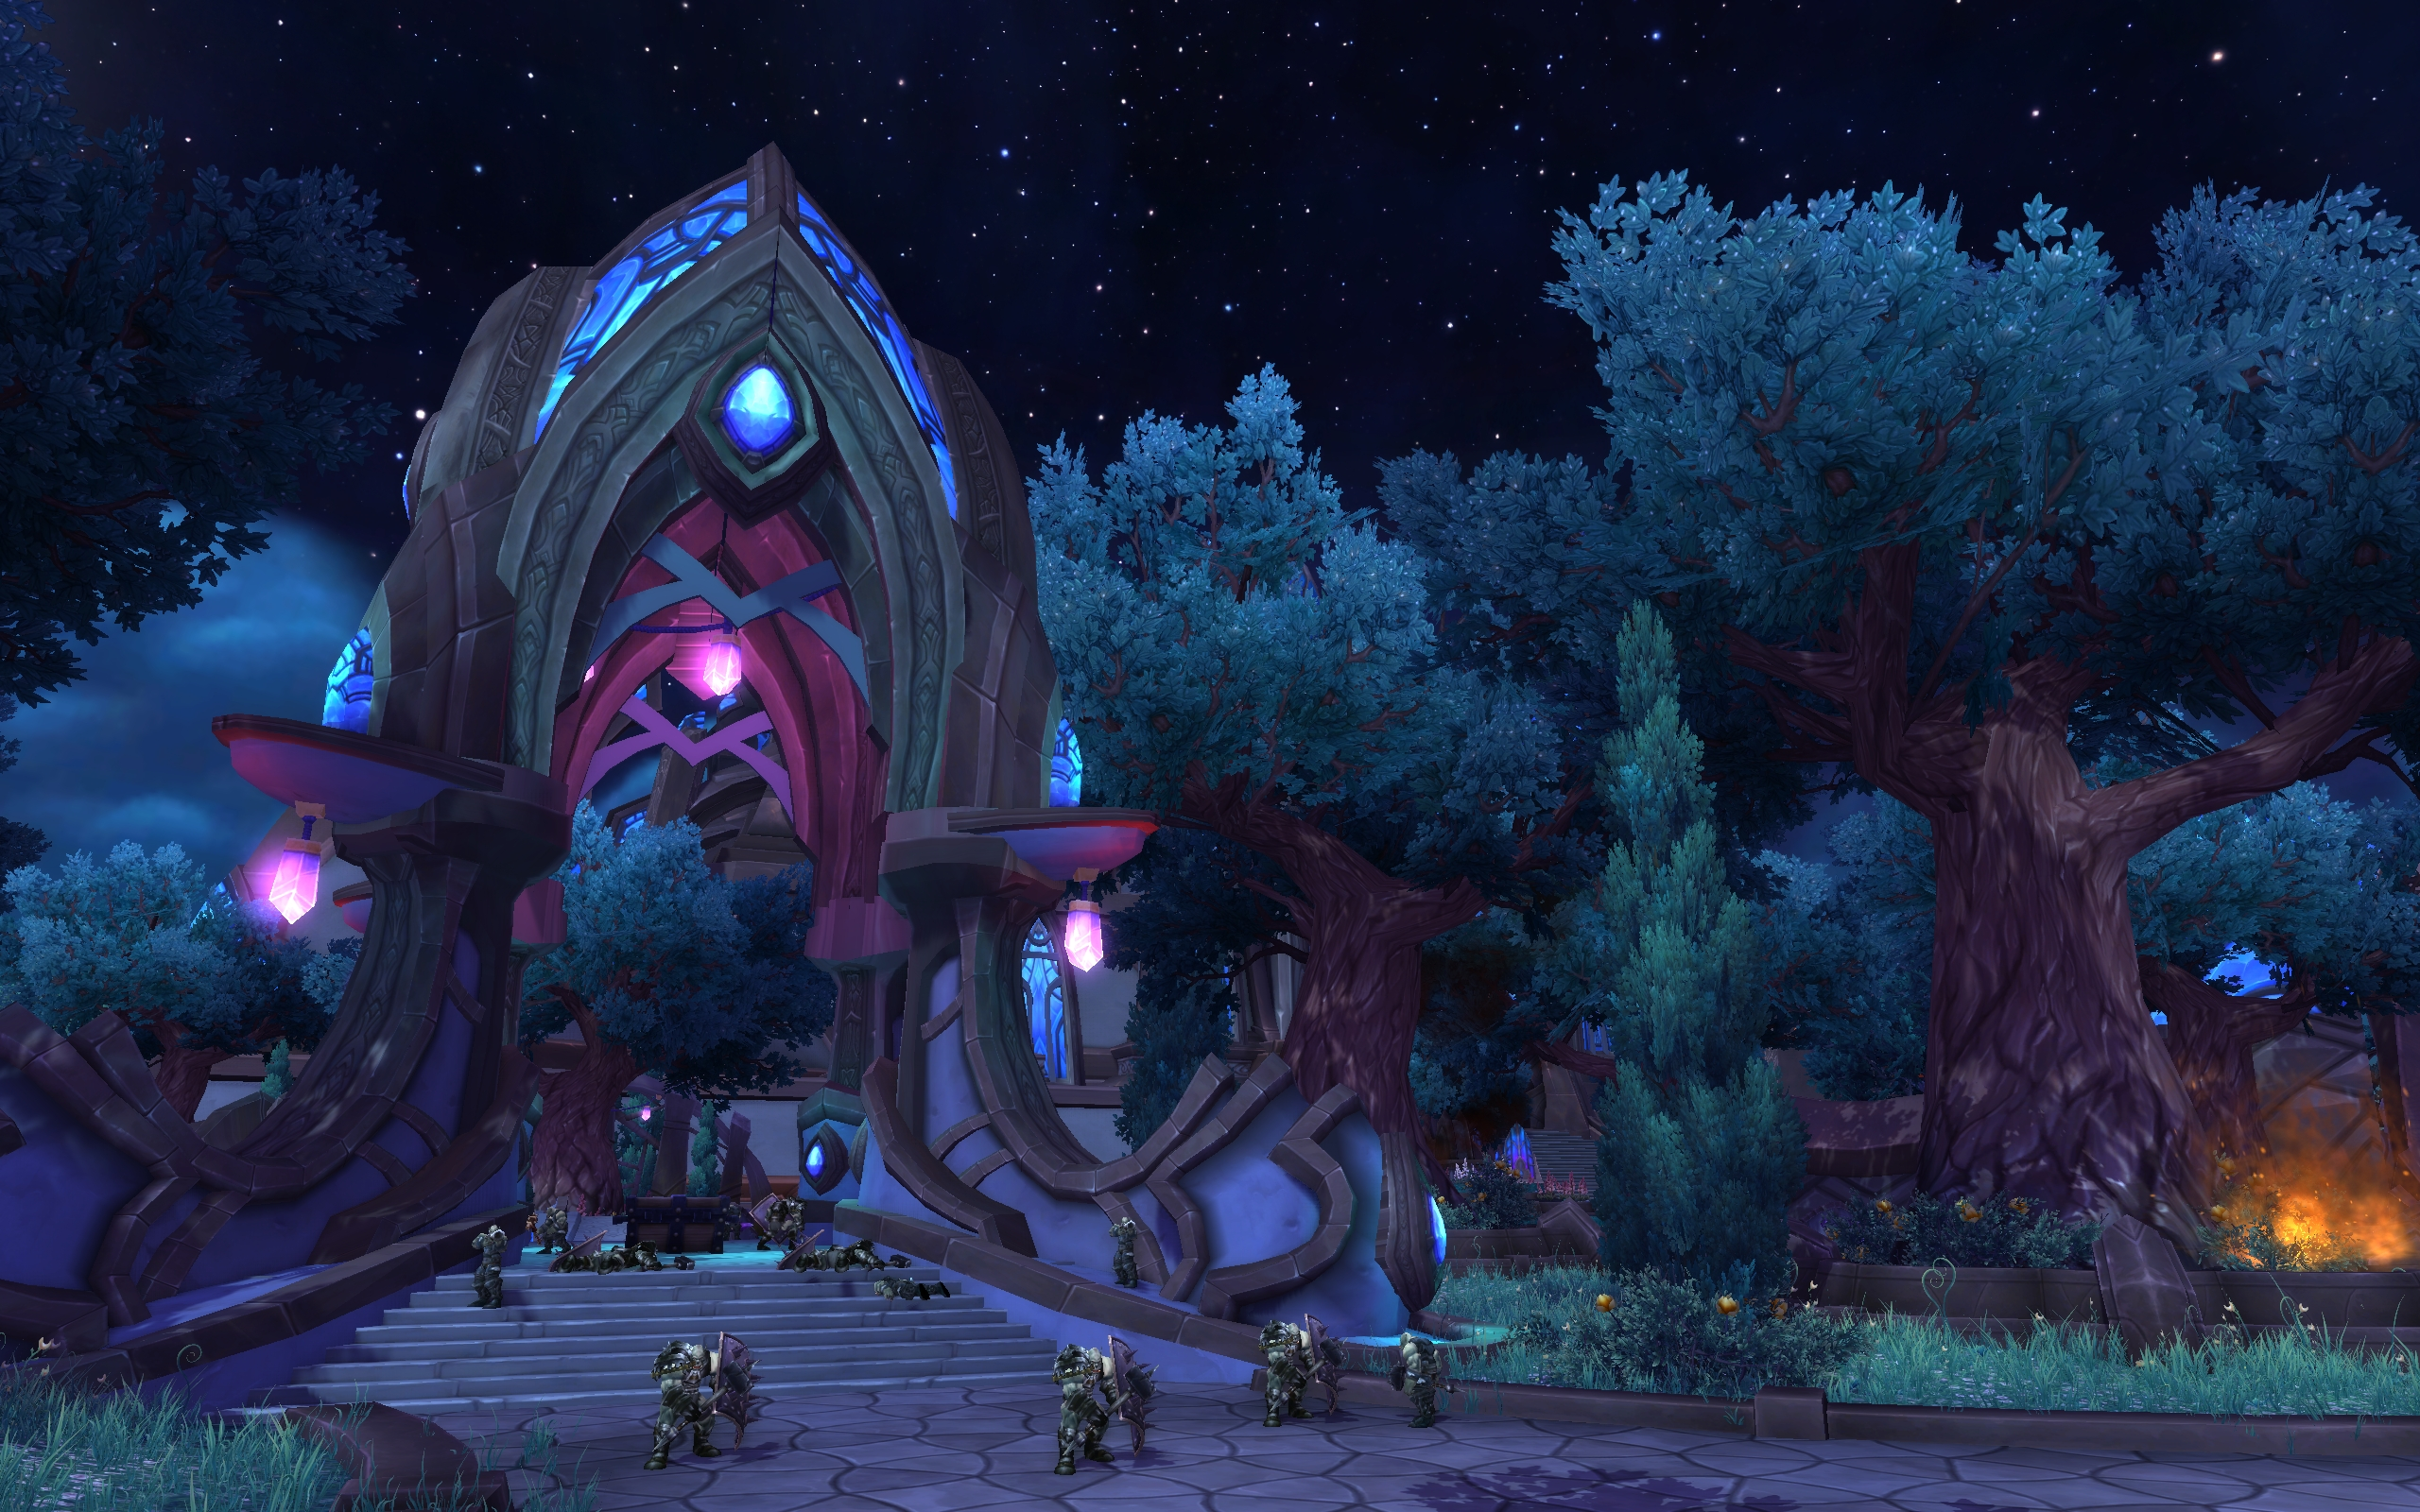 World of Warcraft: Warlords of Draenor remakes history at Blizzcon 2013